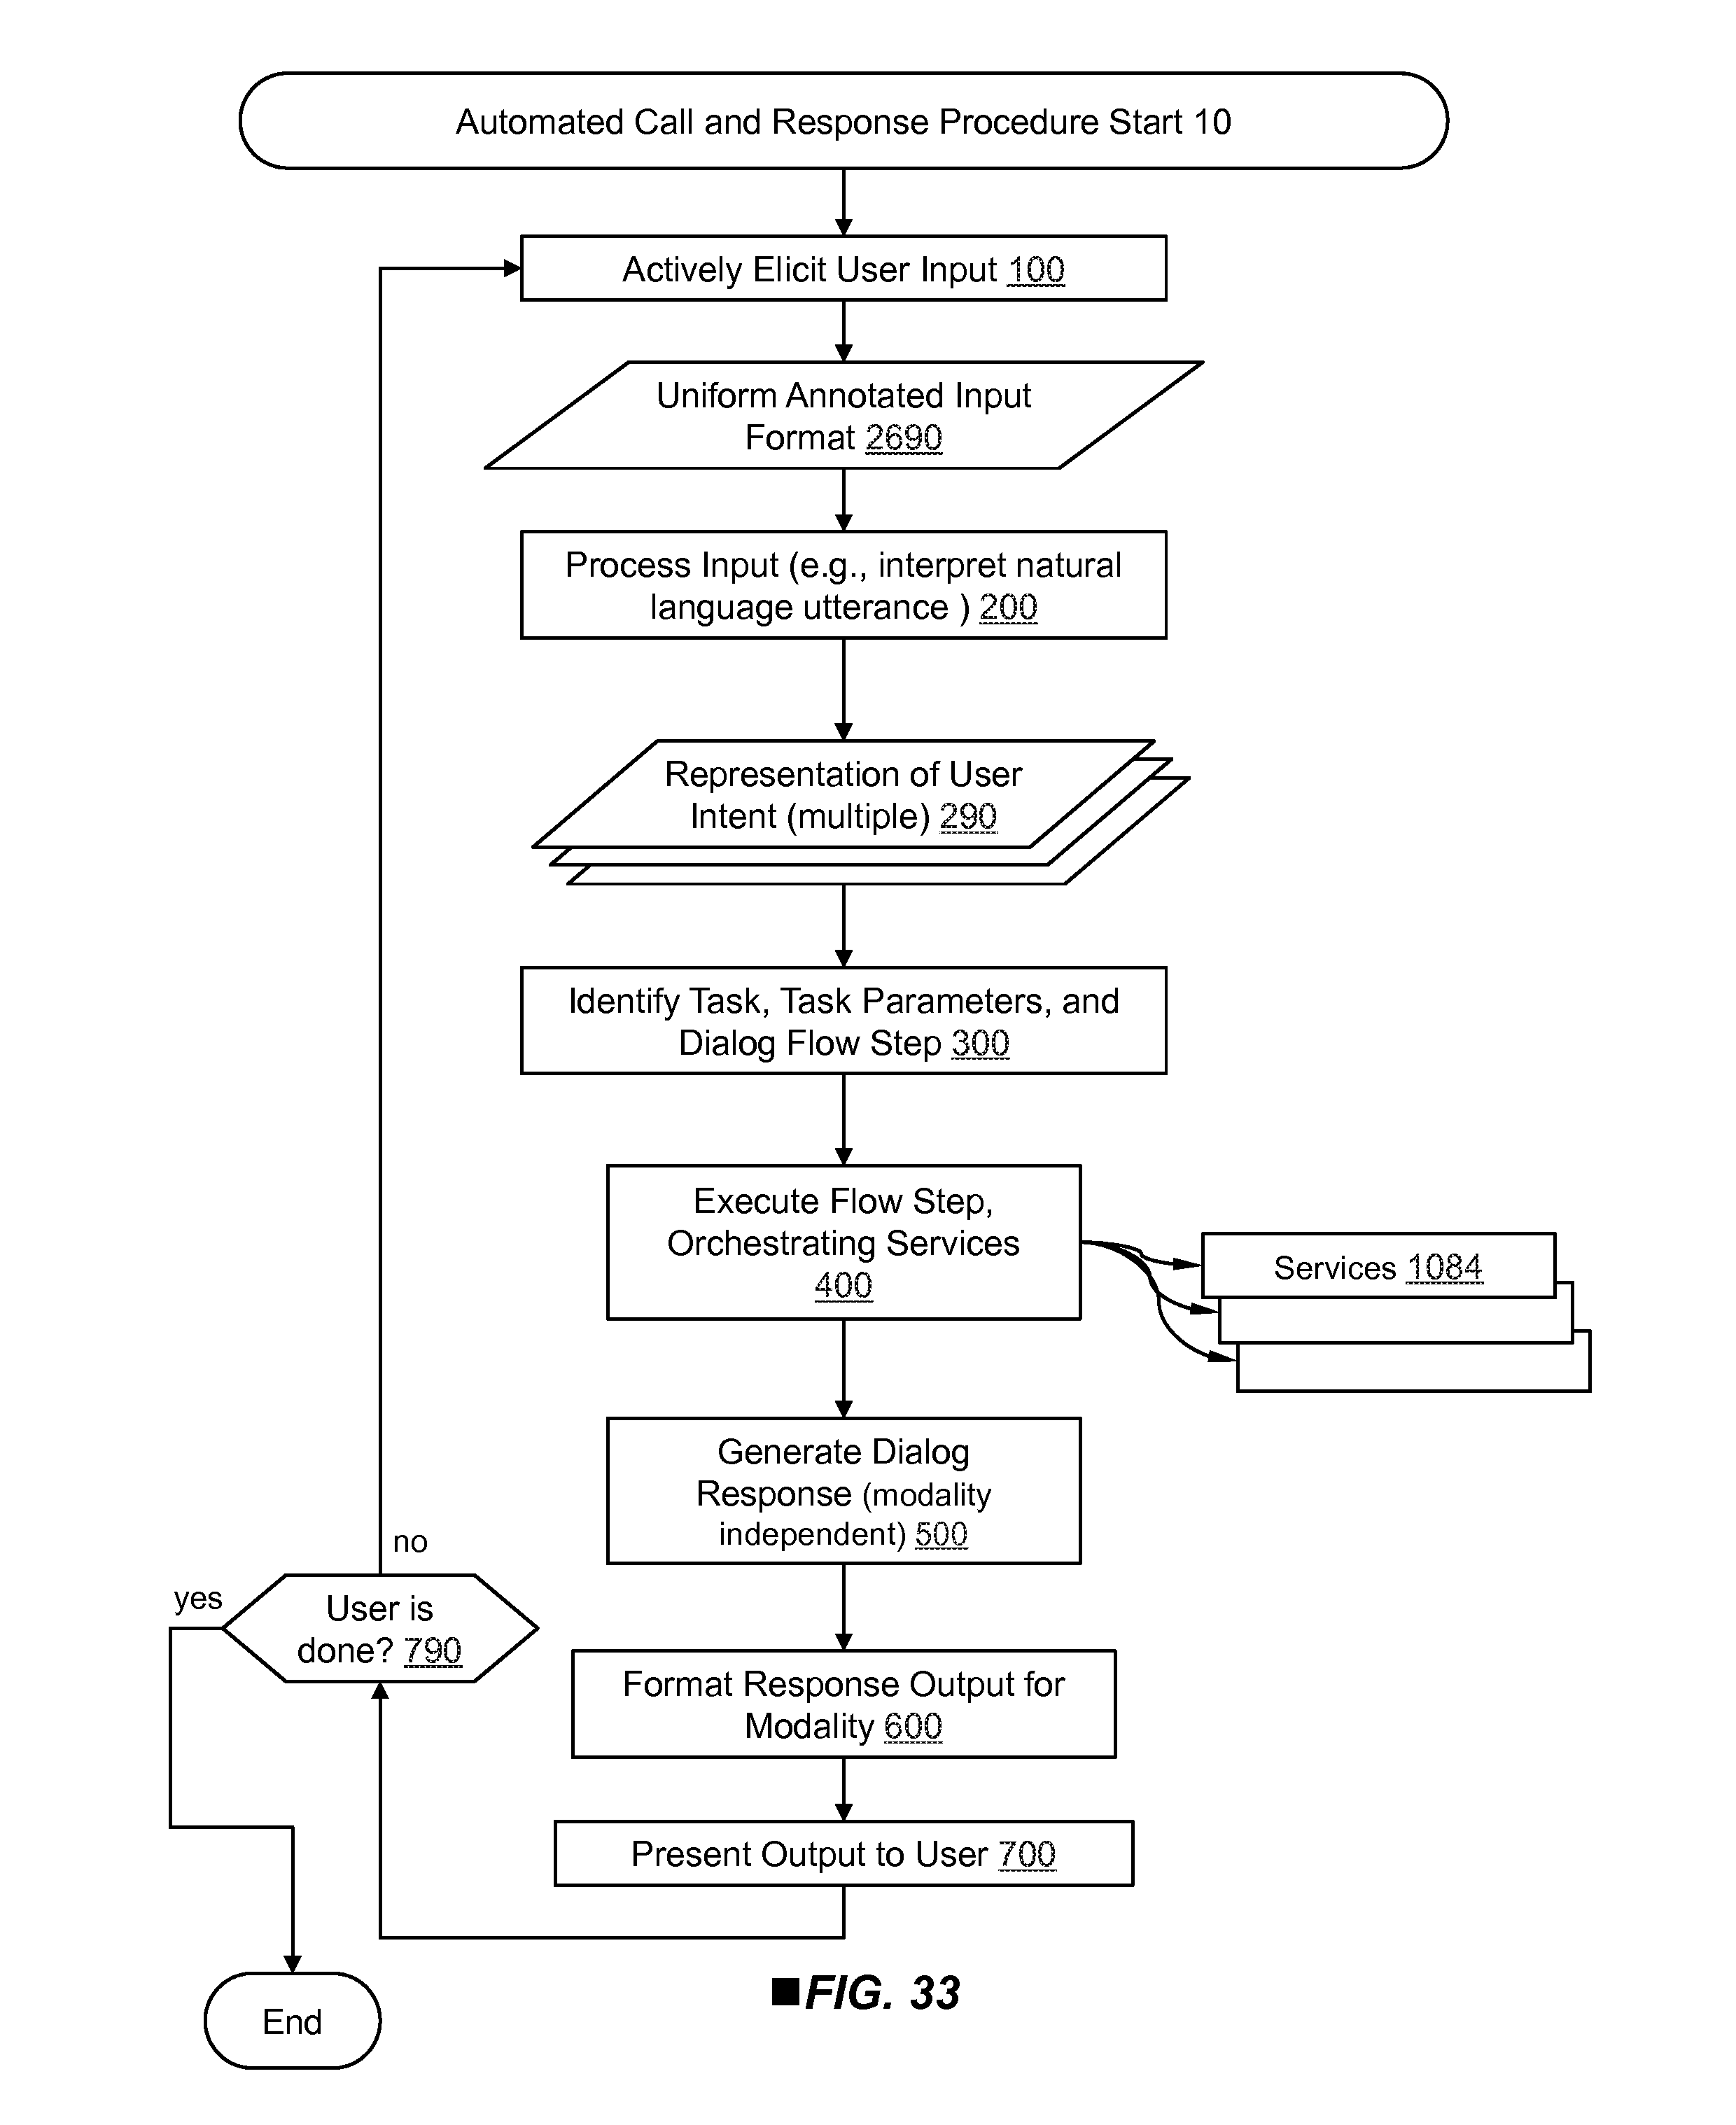 Us20130111348a1 prioritizing selection criteria by automated assistant patents